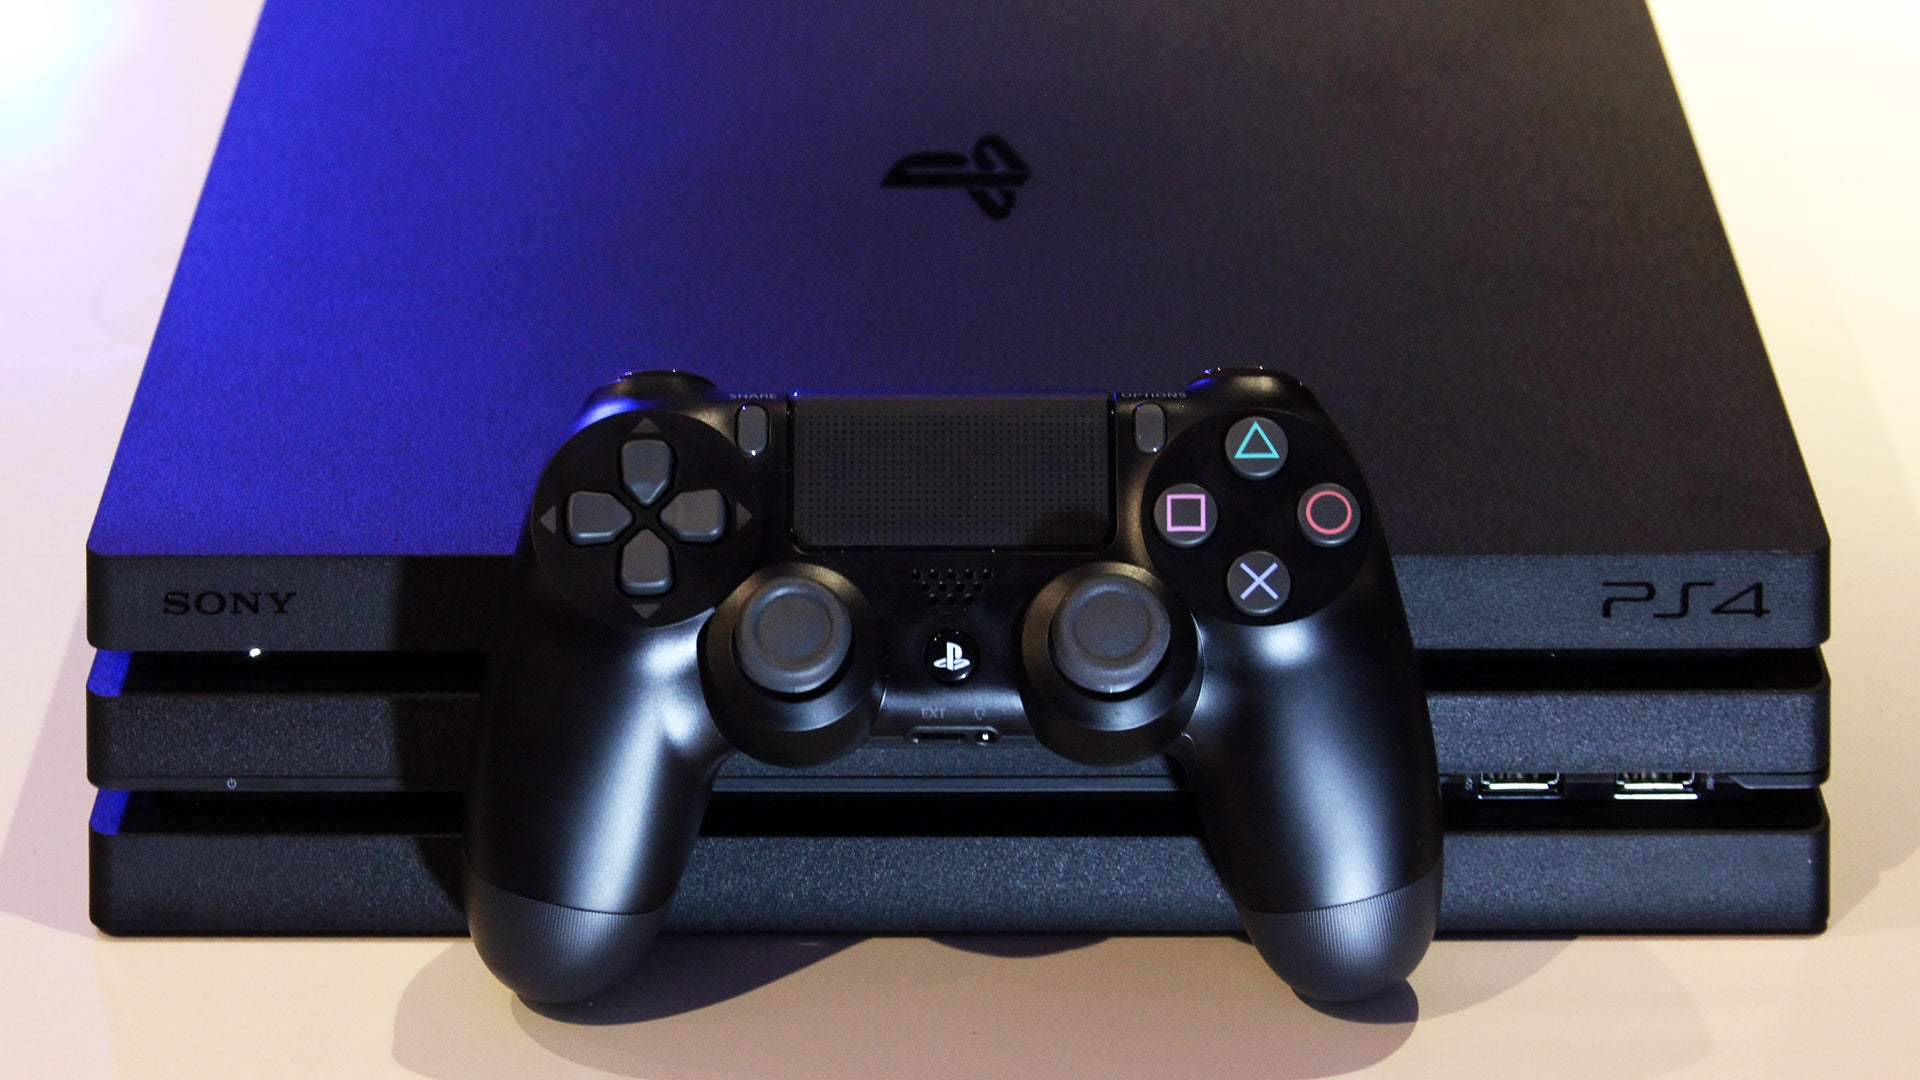 PS4 Controller Battery Life: Tips and tricks to increase